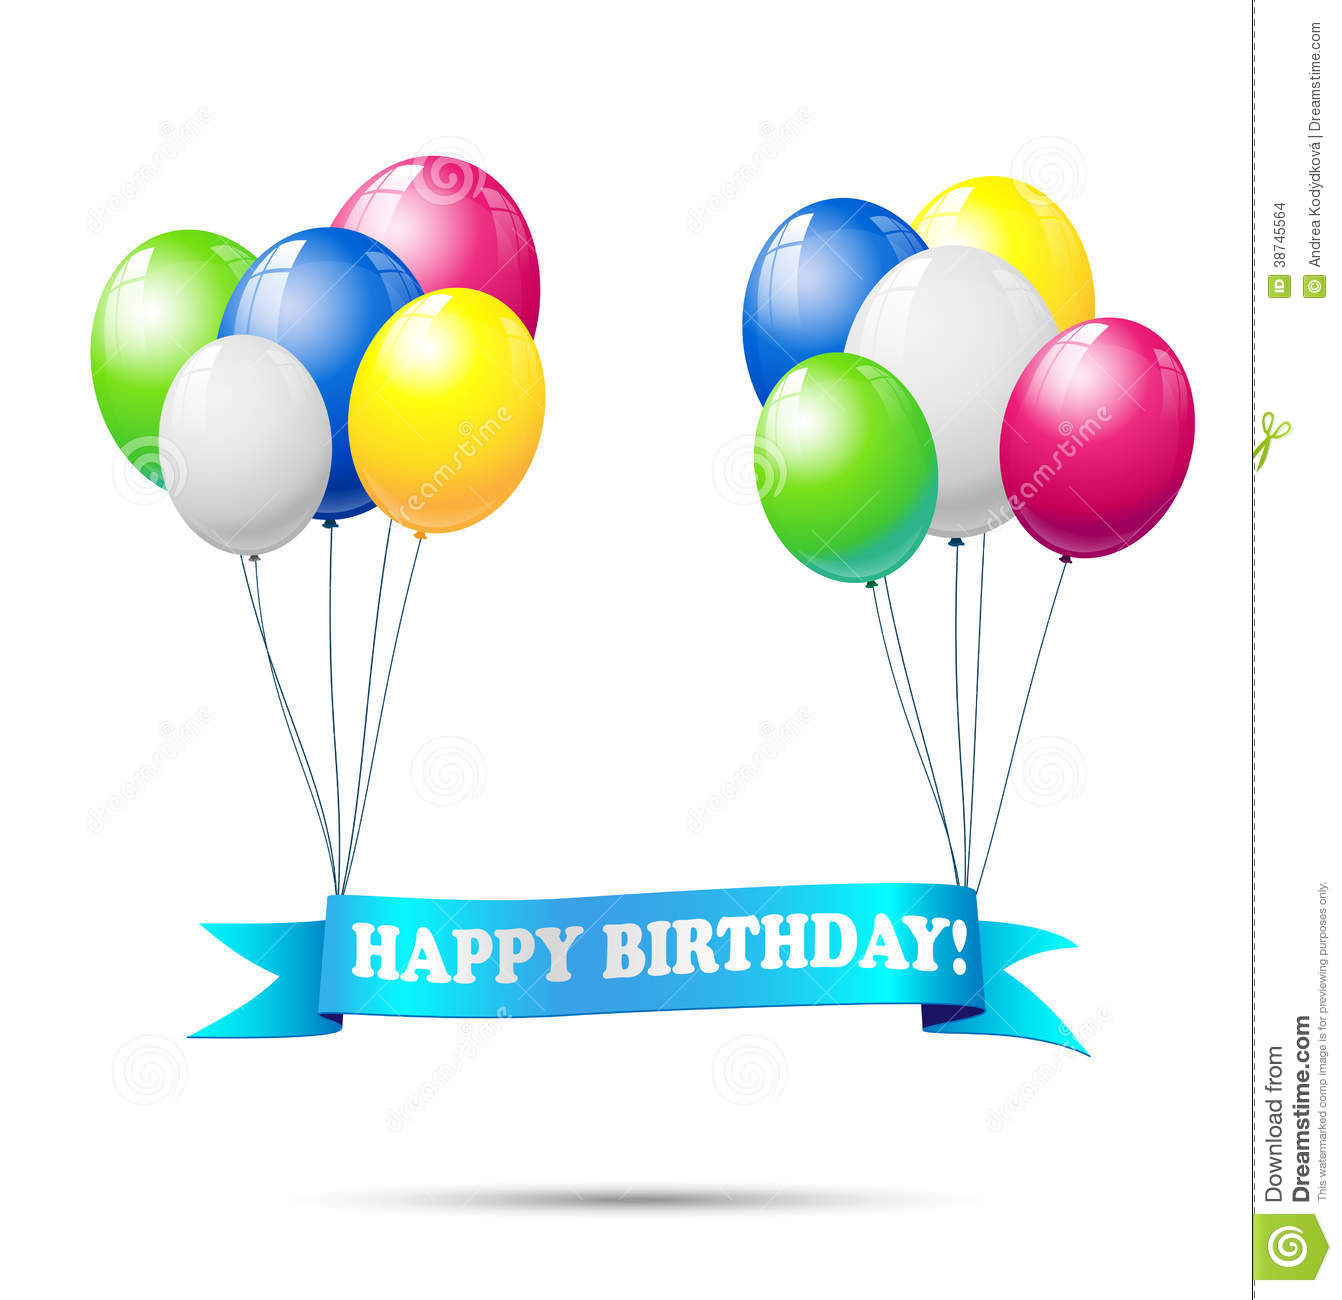 Ribbon With Text Happy Birthday Stock Images - Image: 38745564